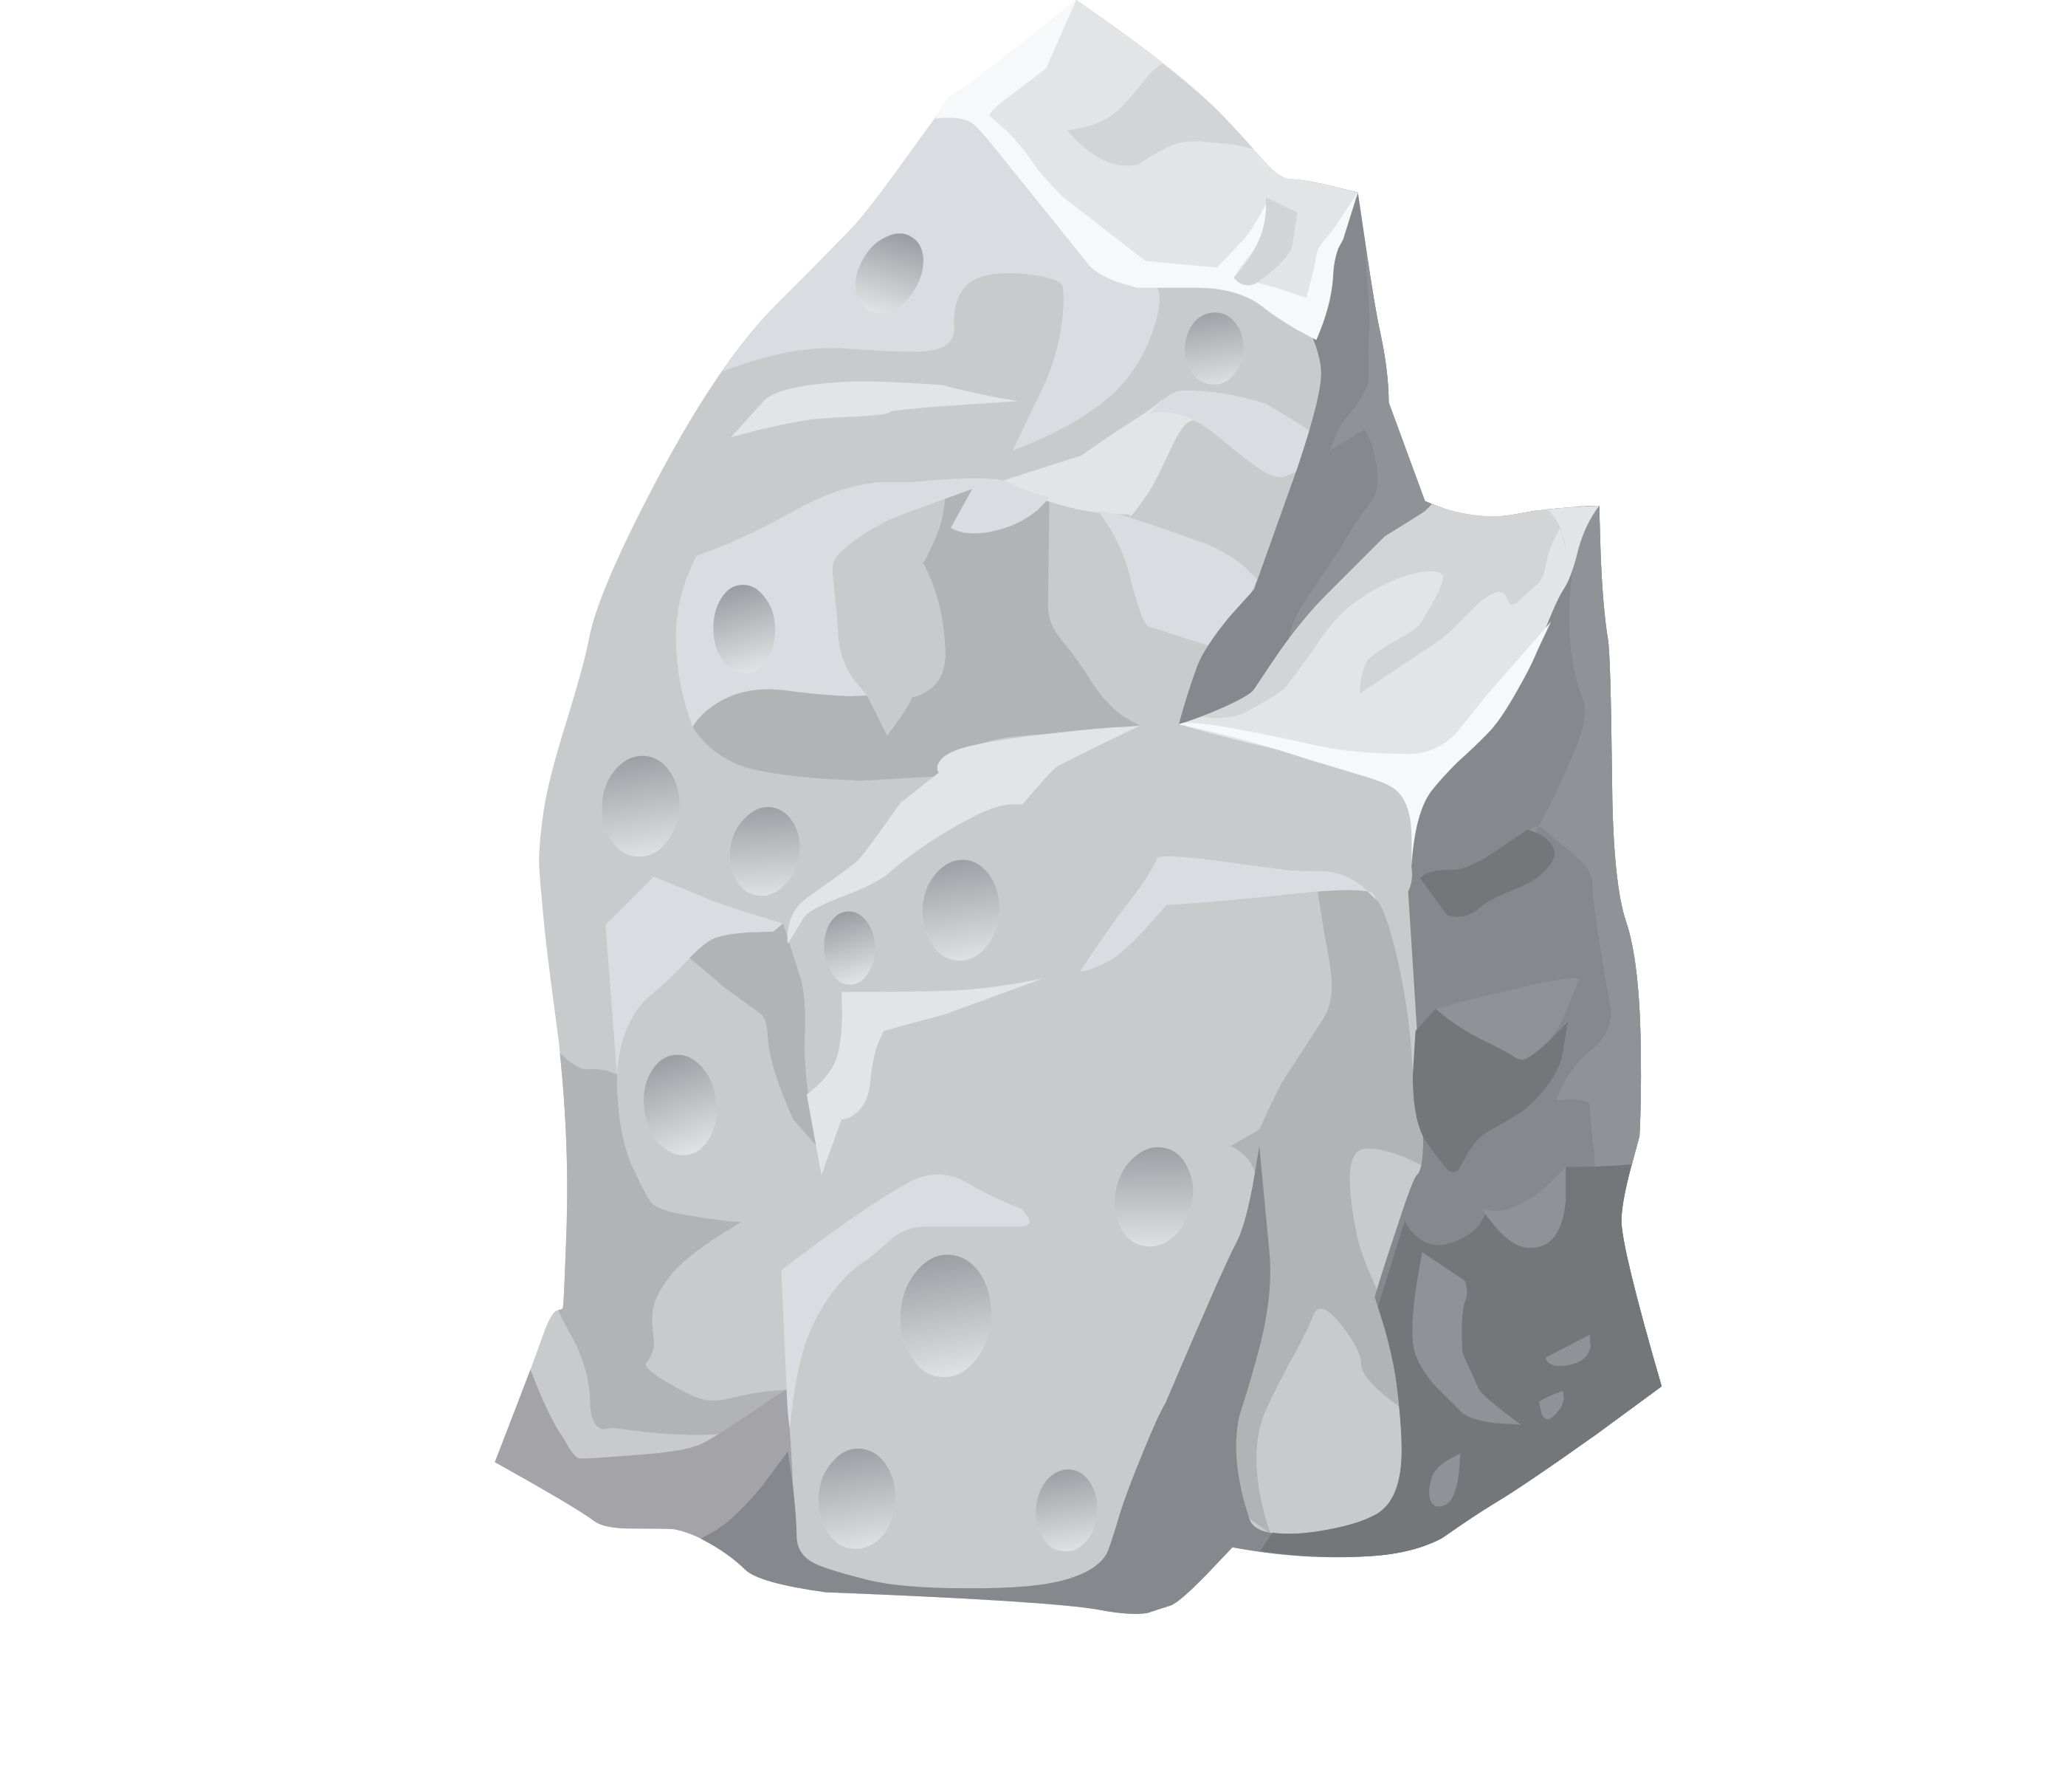 Misc proto dullite icons. Rock clipart outline